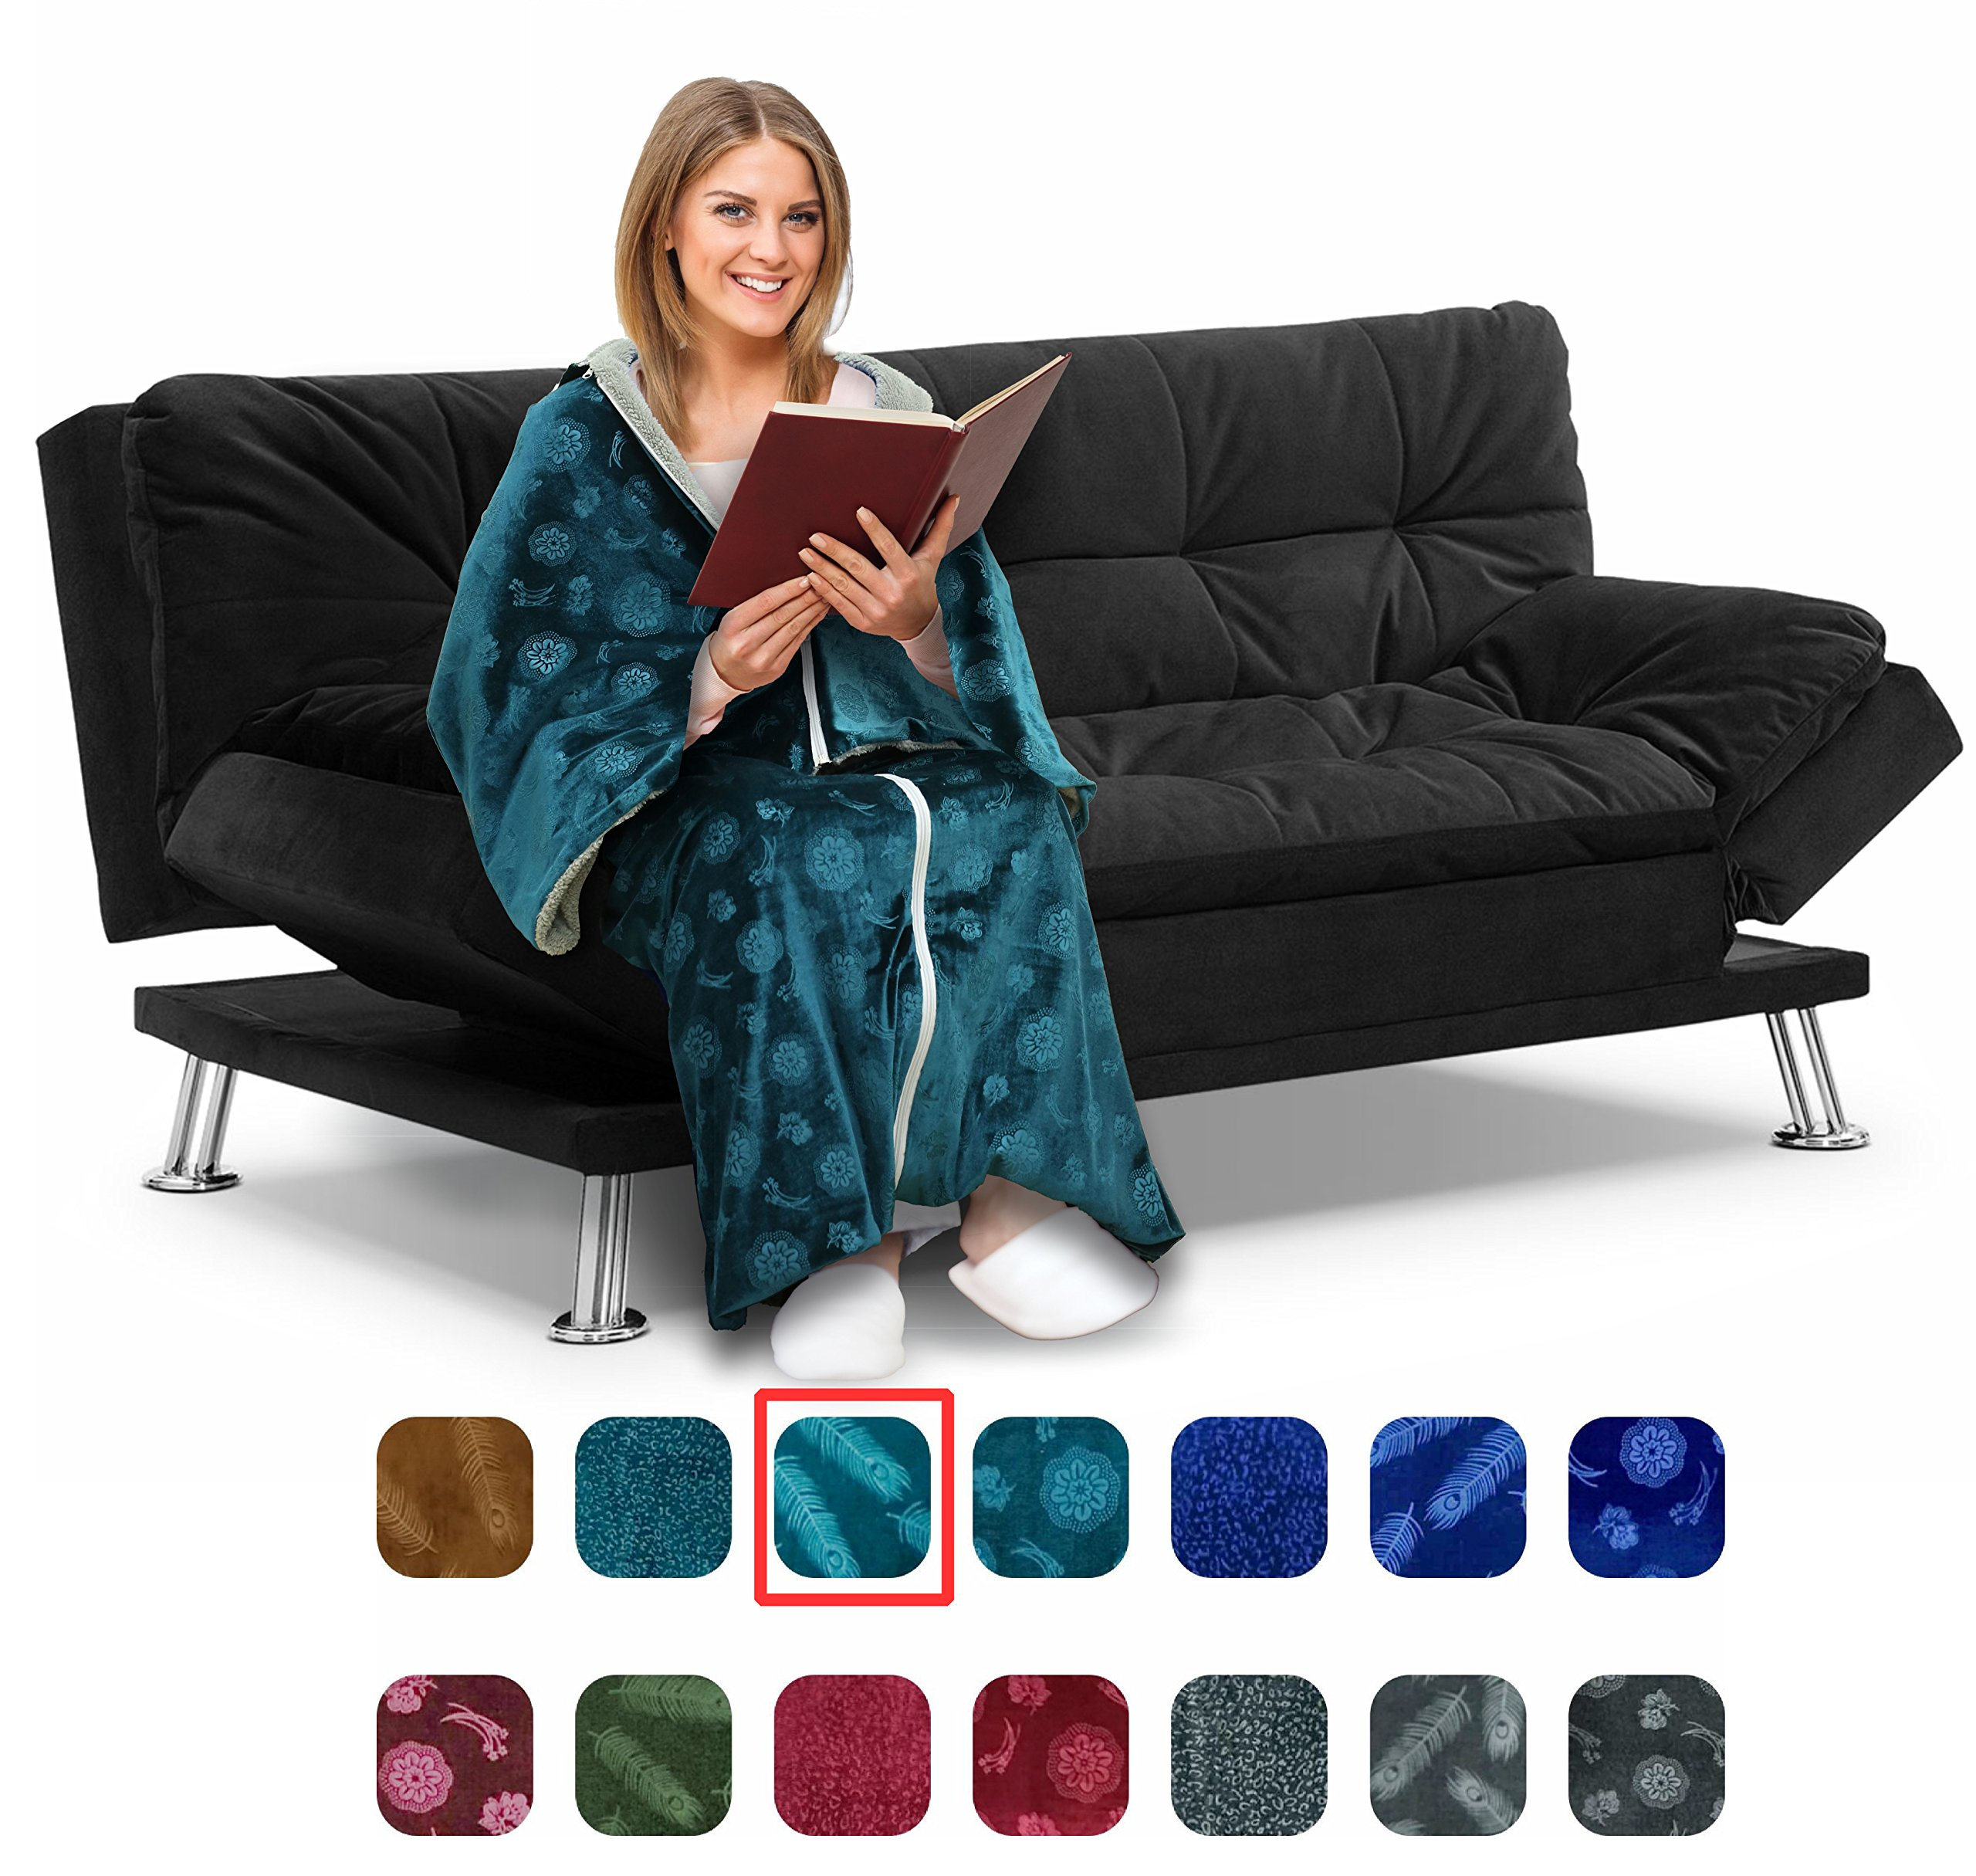 Cōzee Deluxe Wearable Blanket for Adults - Elegant, Cozy, Extra Soft Plush Throw Blanket - Ideal for Elderly & Handicap Clothing, Wheelchairs, or Watching TV (Turquoise-Feathers)